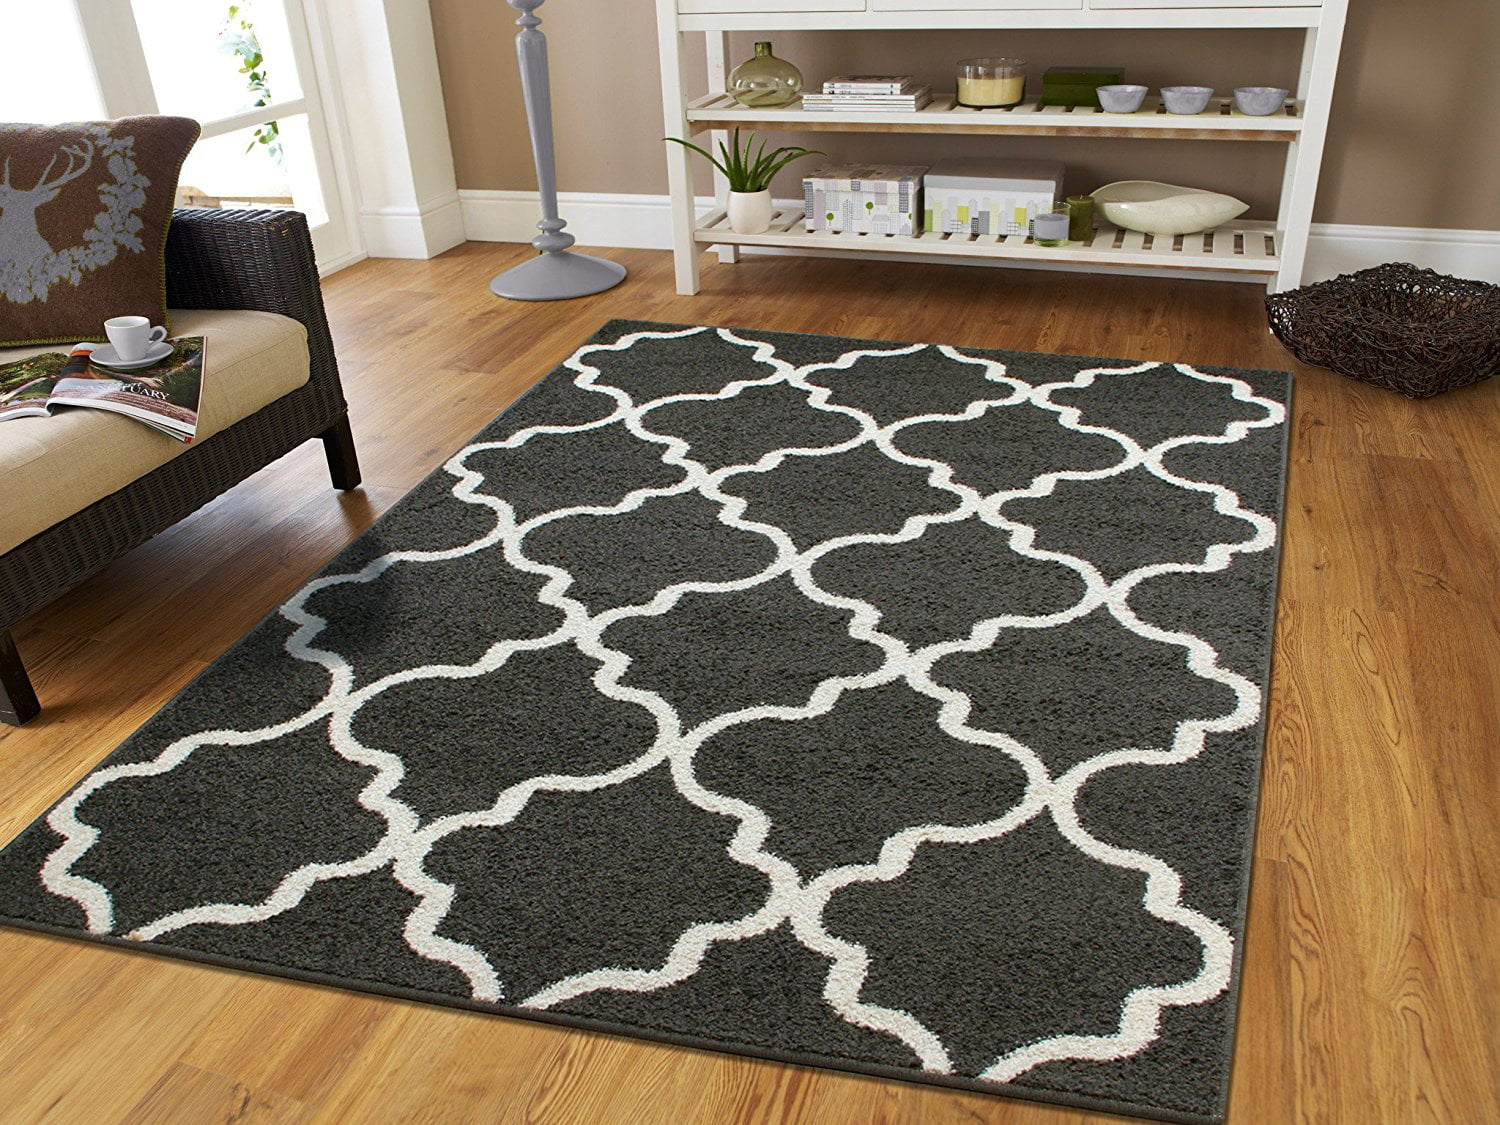 Area rugs for living room 5x8 dark gray modern rug - Living room area rugs contemporary ...